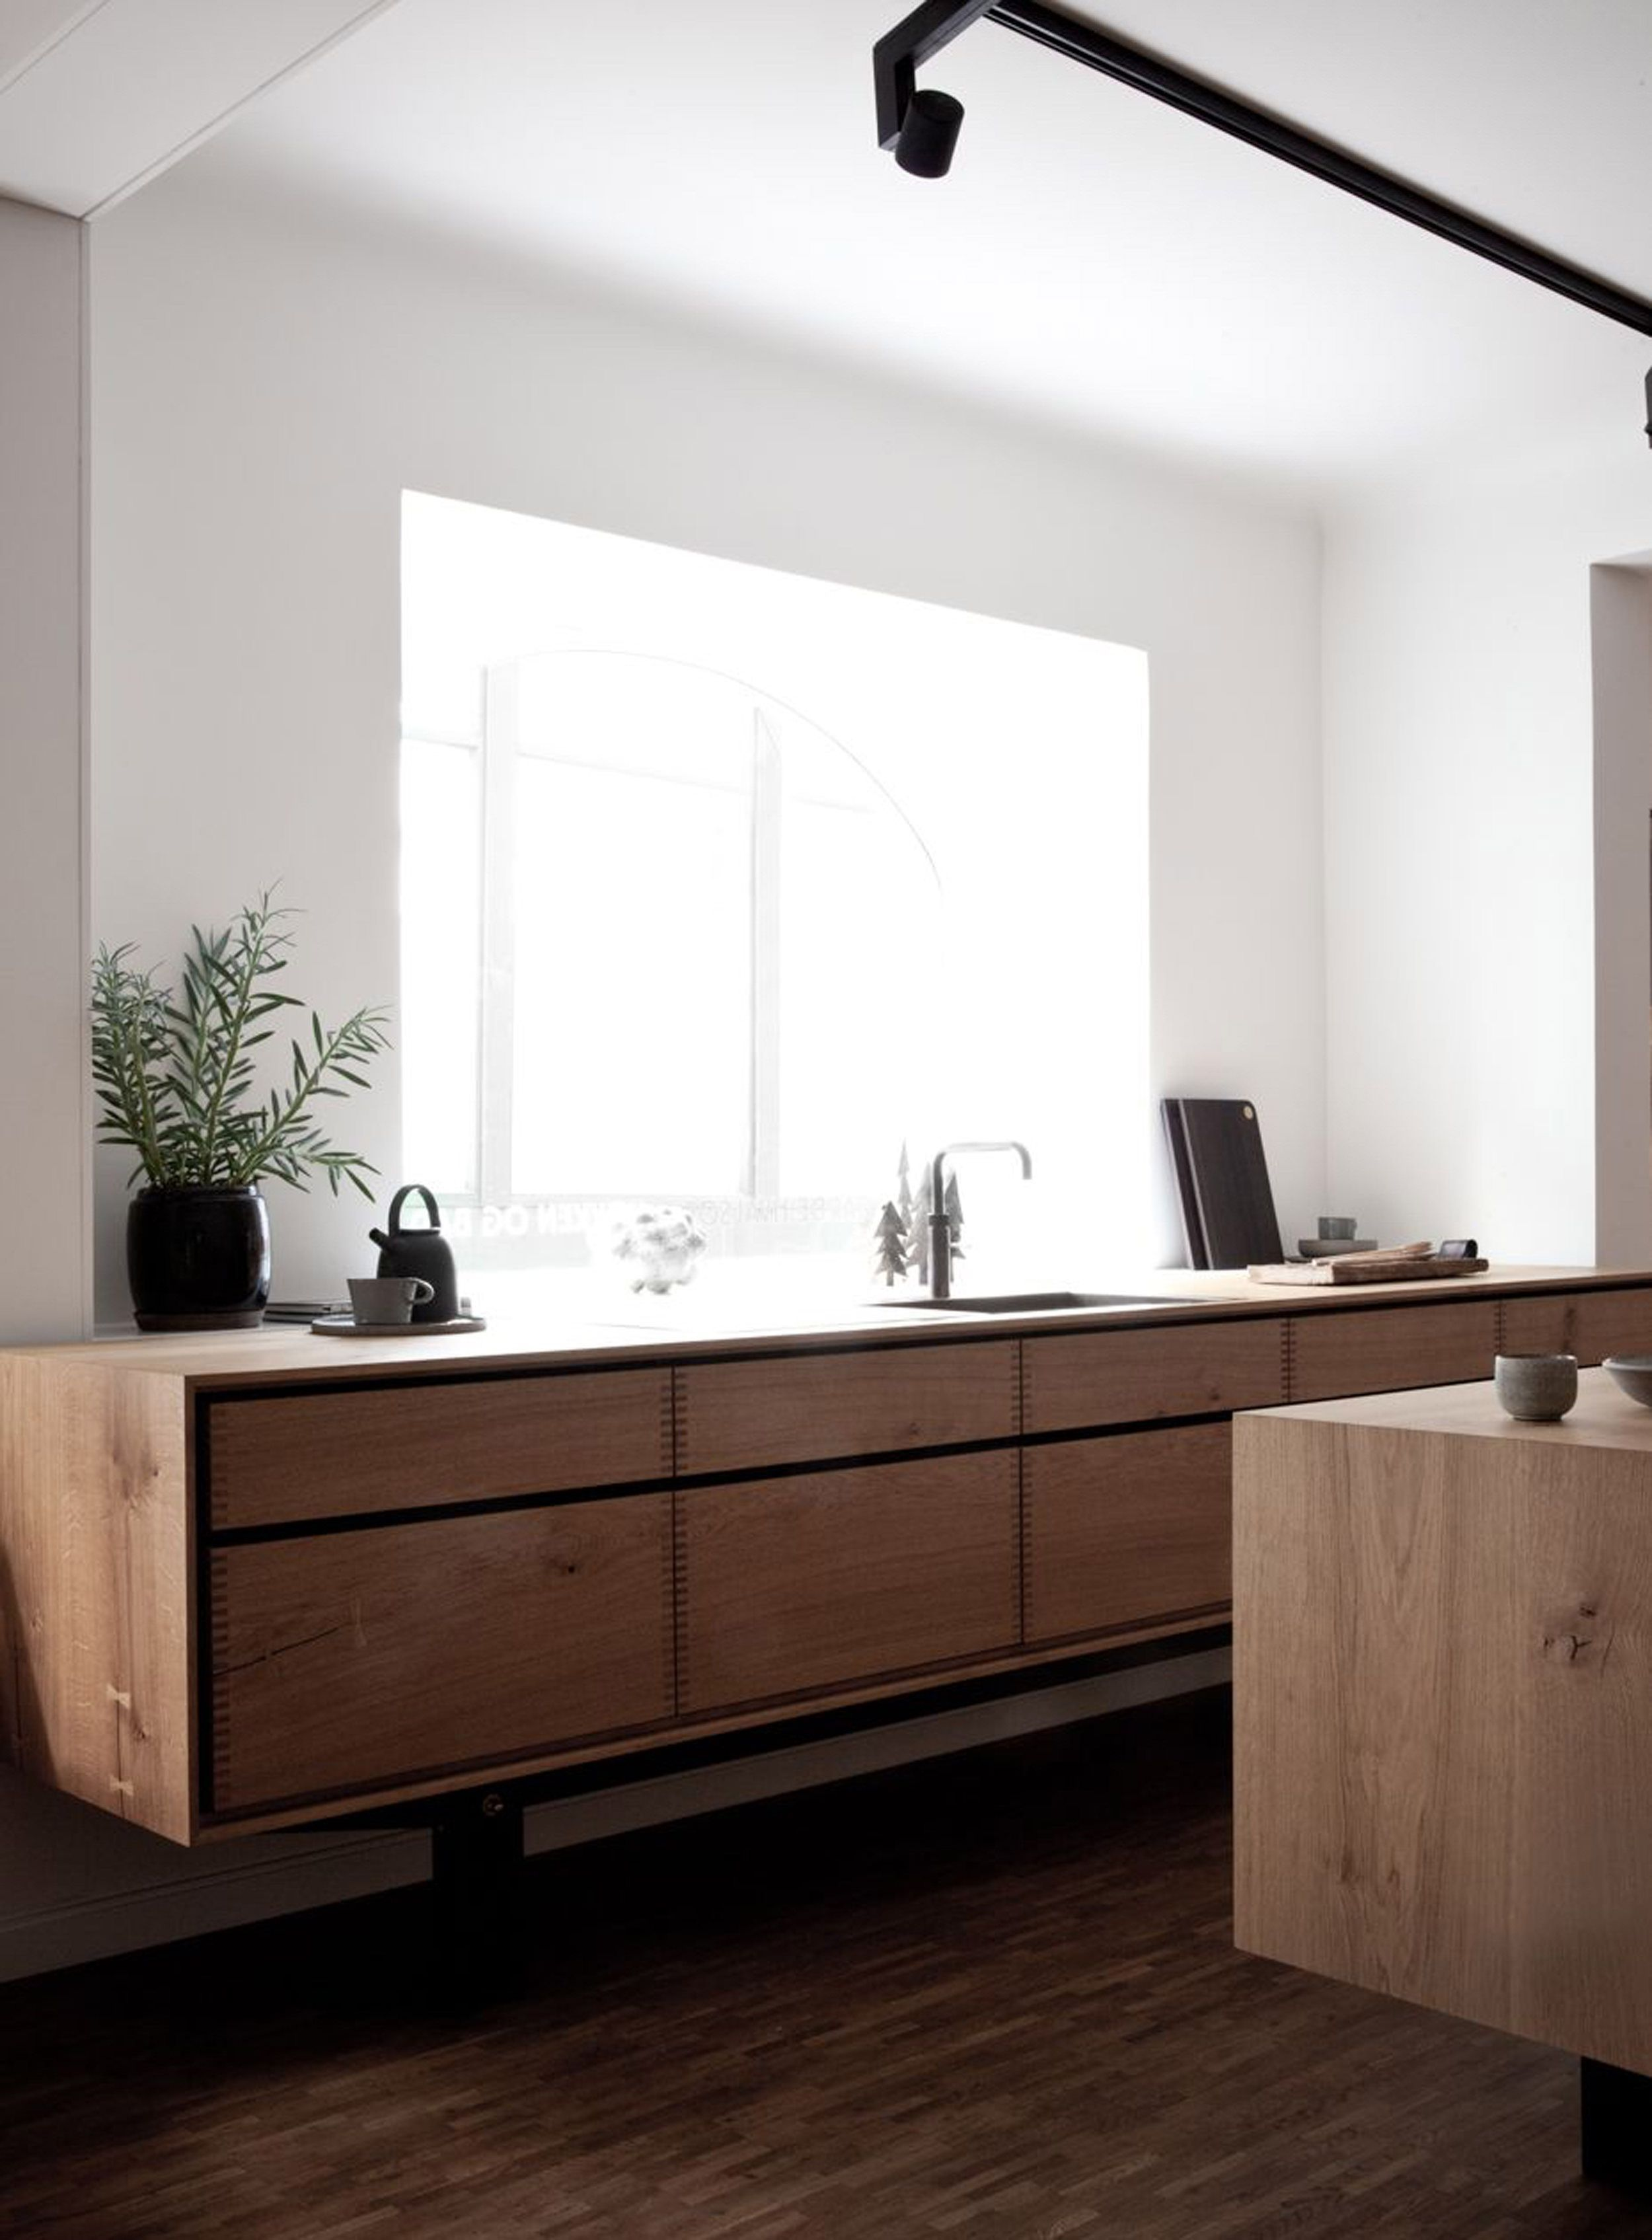 kitchen, wooden floor, wooden floating cabinet, white wall